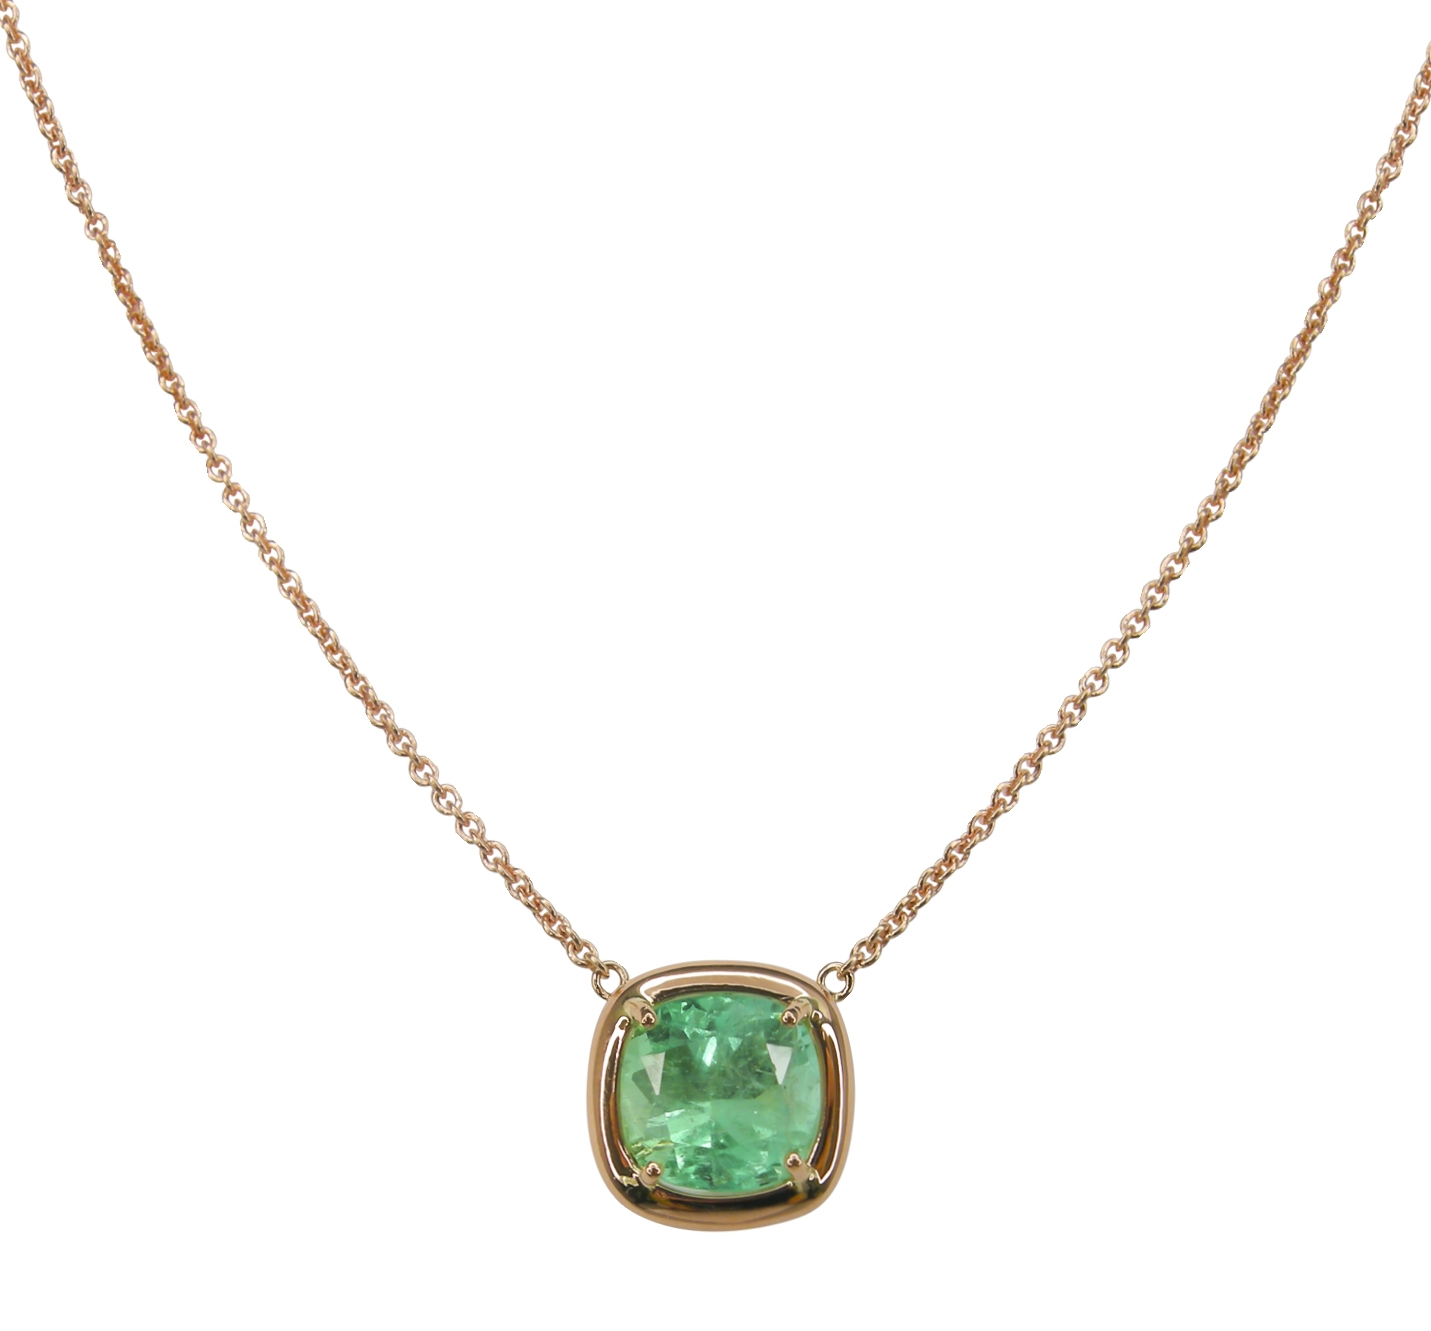 COLOMBIAN EMERALD ROSE GOLD PENDANT BESPOKE FINE JEWELLERY BY SHAHINA HATTA